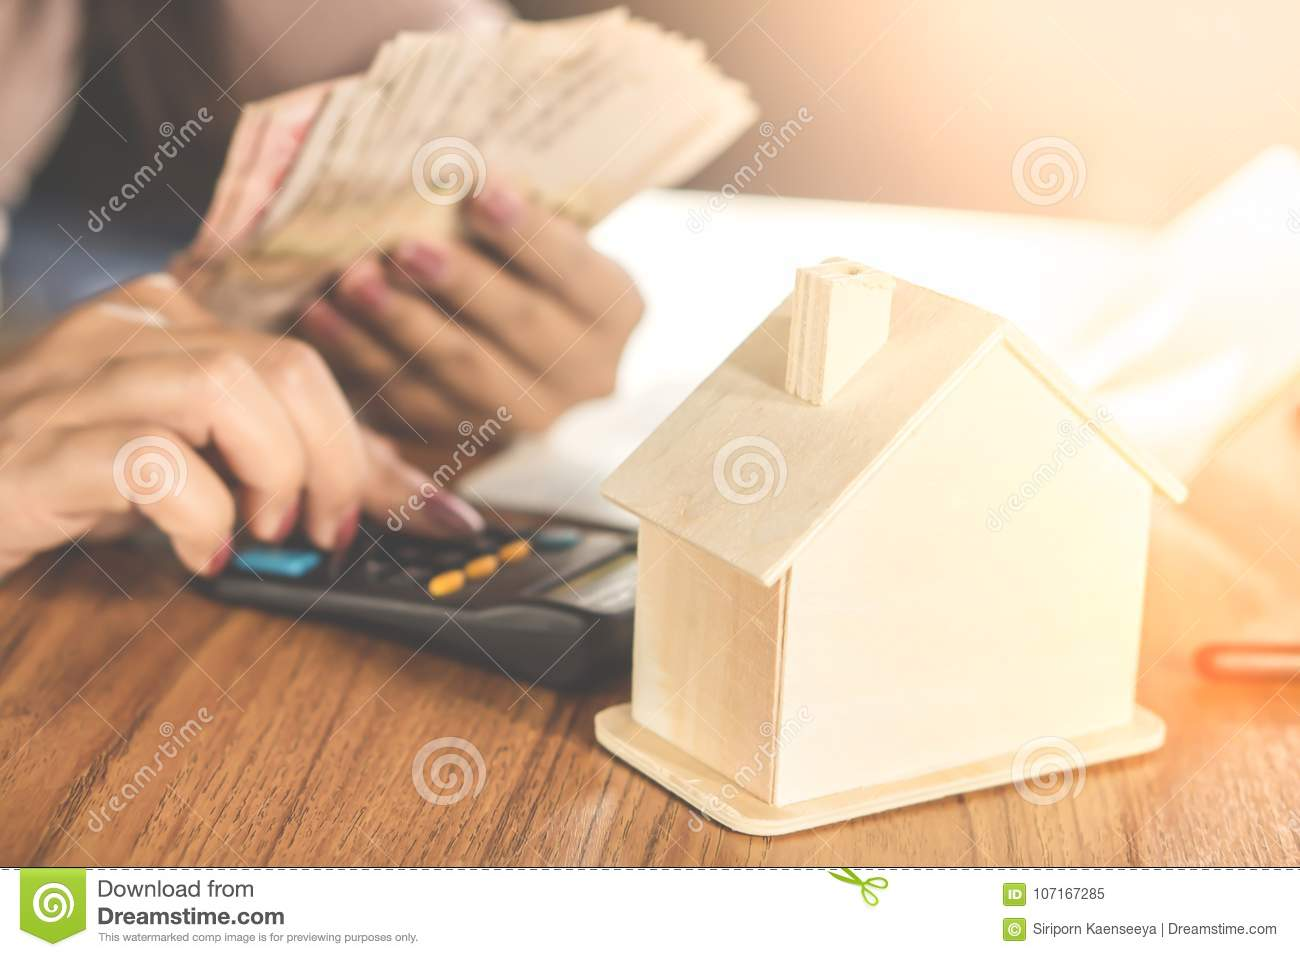 Woman hand calculating money with house model on wooden table planing to buy or rent home